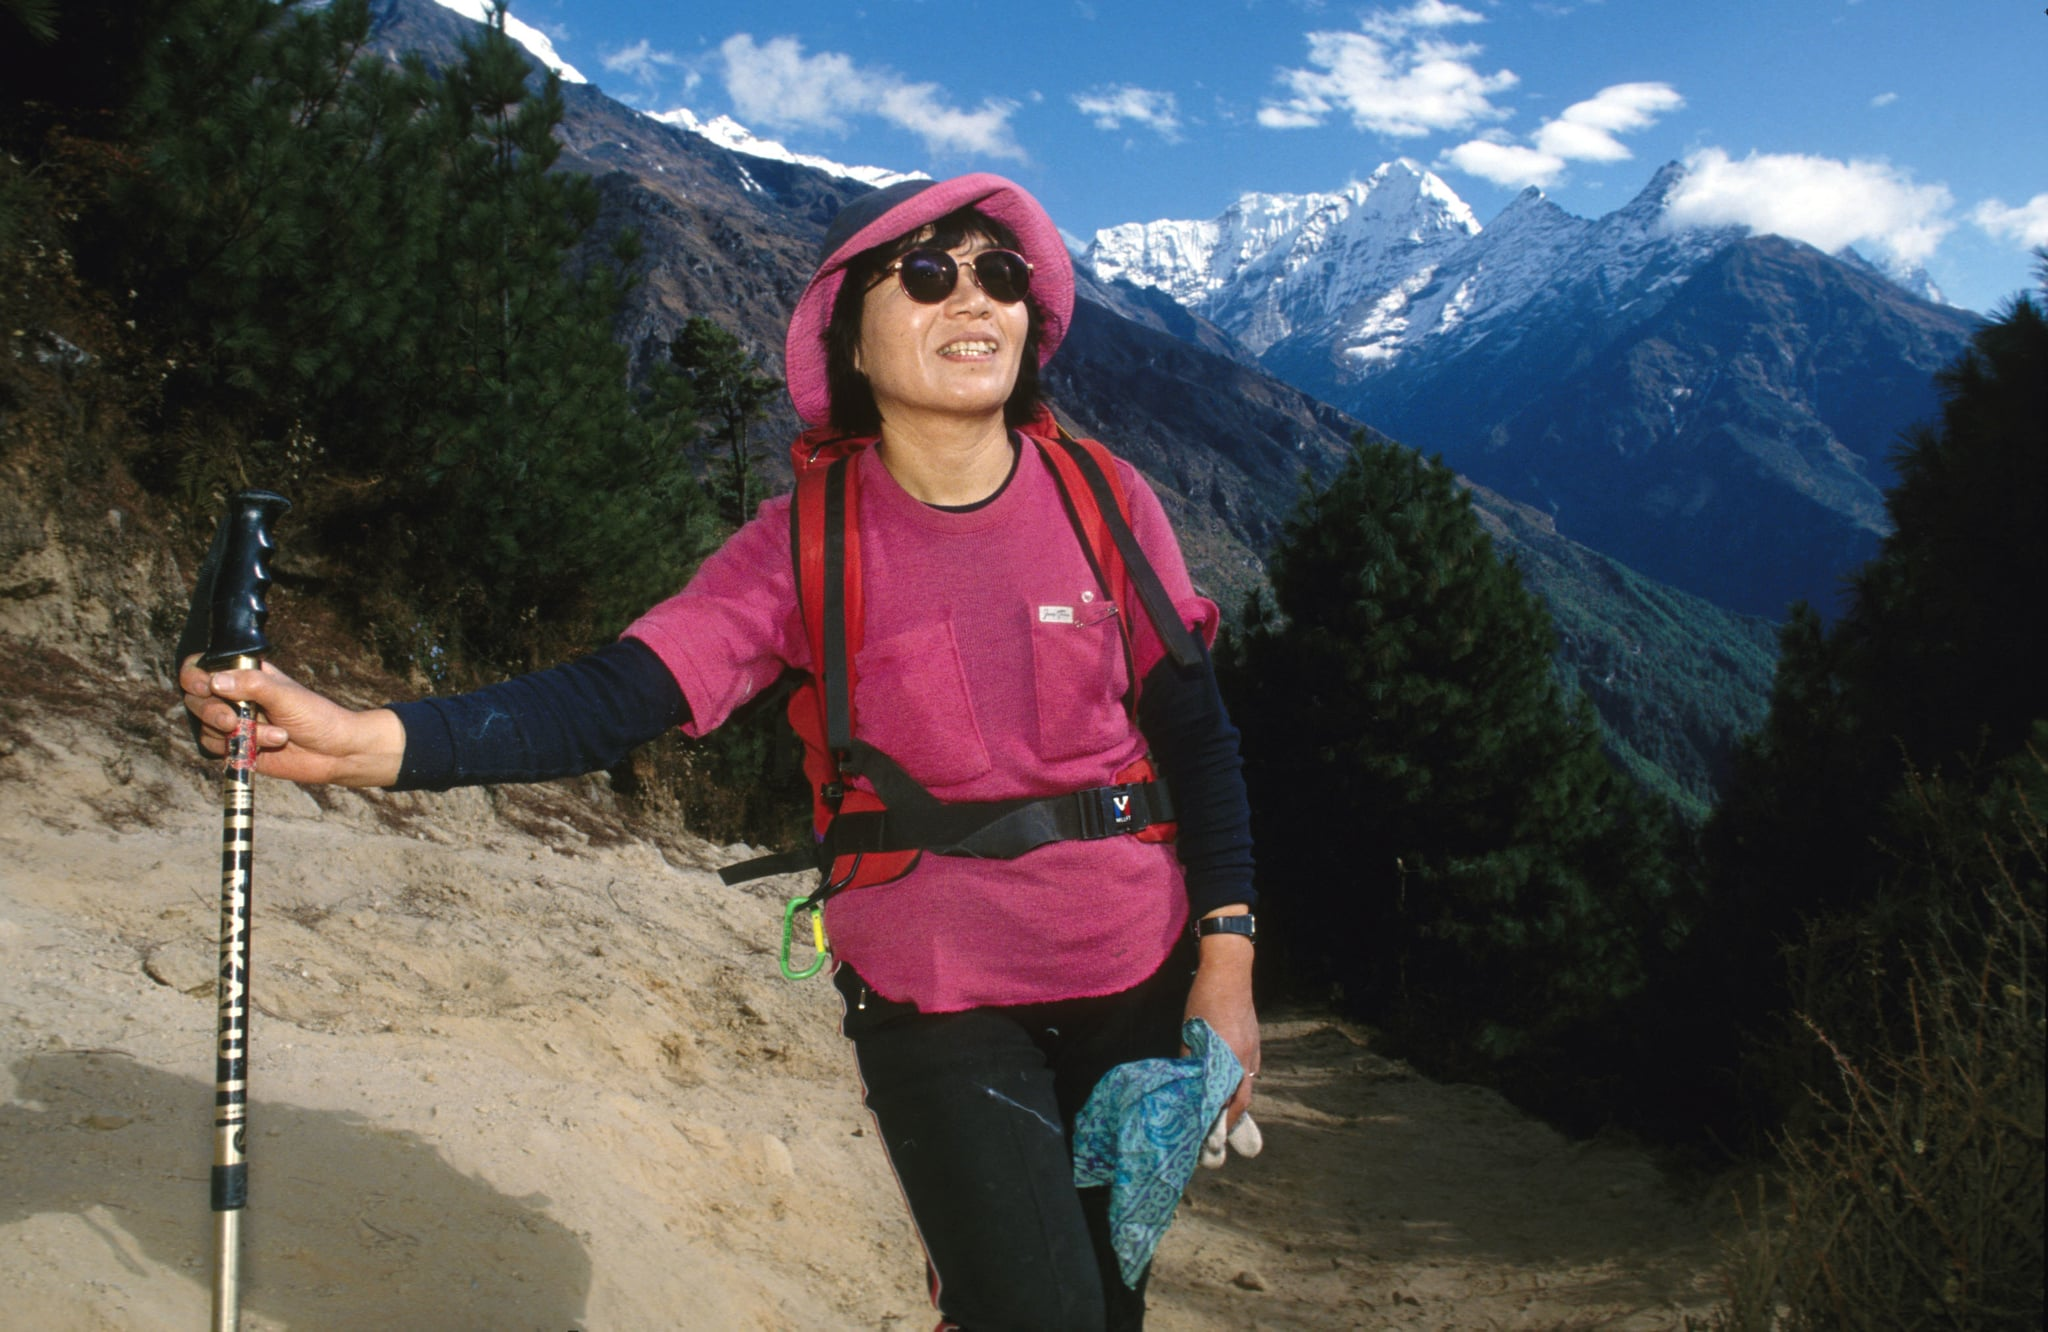 Junko Tabei, from Japan, was the first woman to reach the summit of Everest on May 16, 1975, at the age of 35. Despite being injured in an avalanche at Camp II with 7 other Japanese expedition members, including 6 Sherpas twelve days before, she succeeded in conquering Everest. (Photo by John van Hasselt/Corbis via Getty Images)